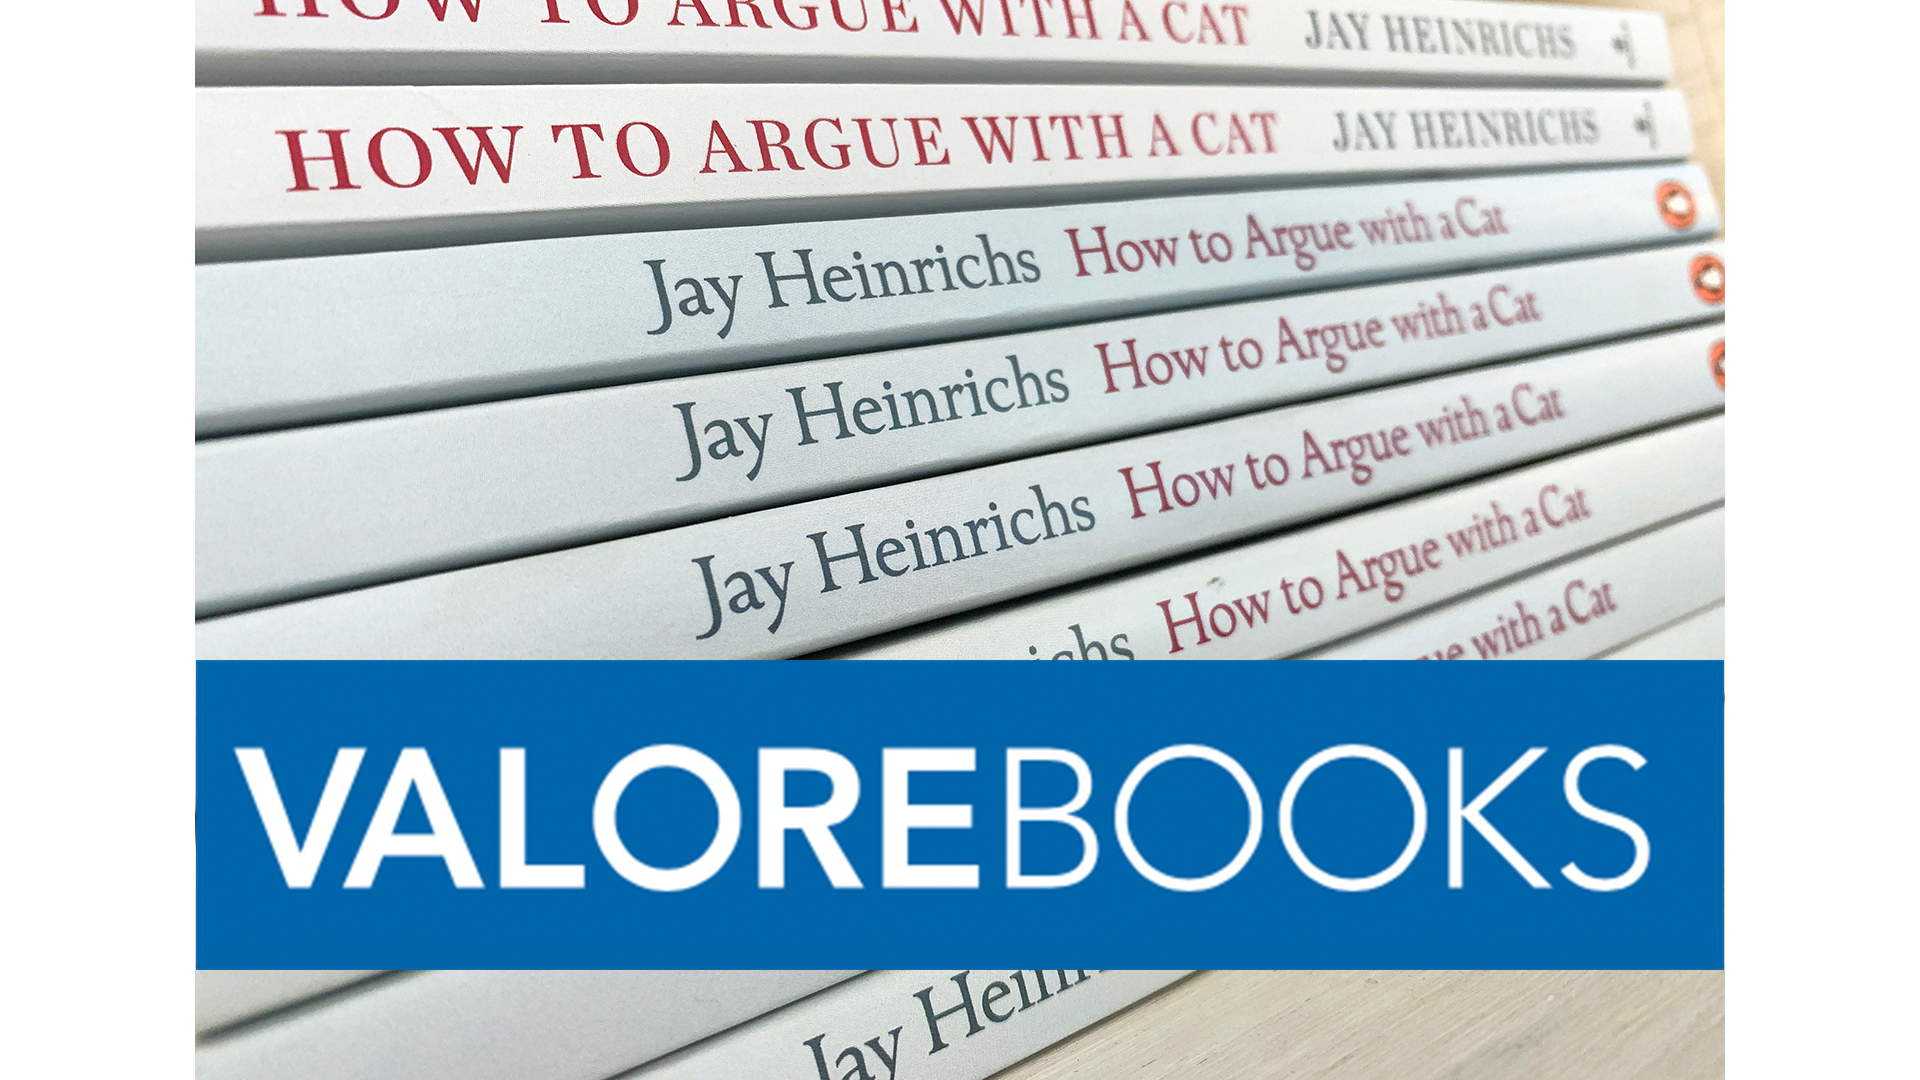 Valore Books | How To Argue With A Cat